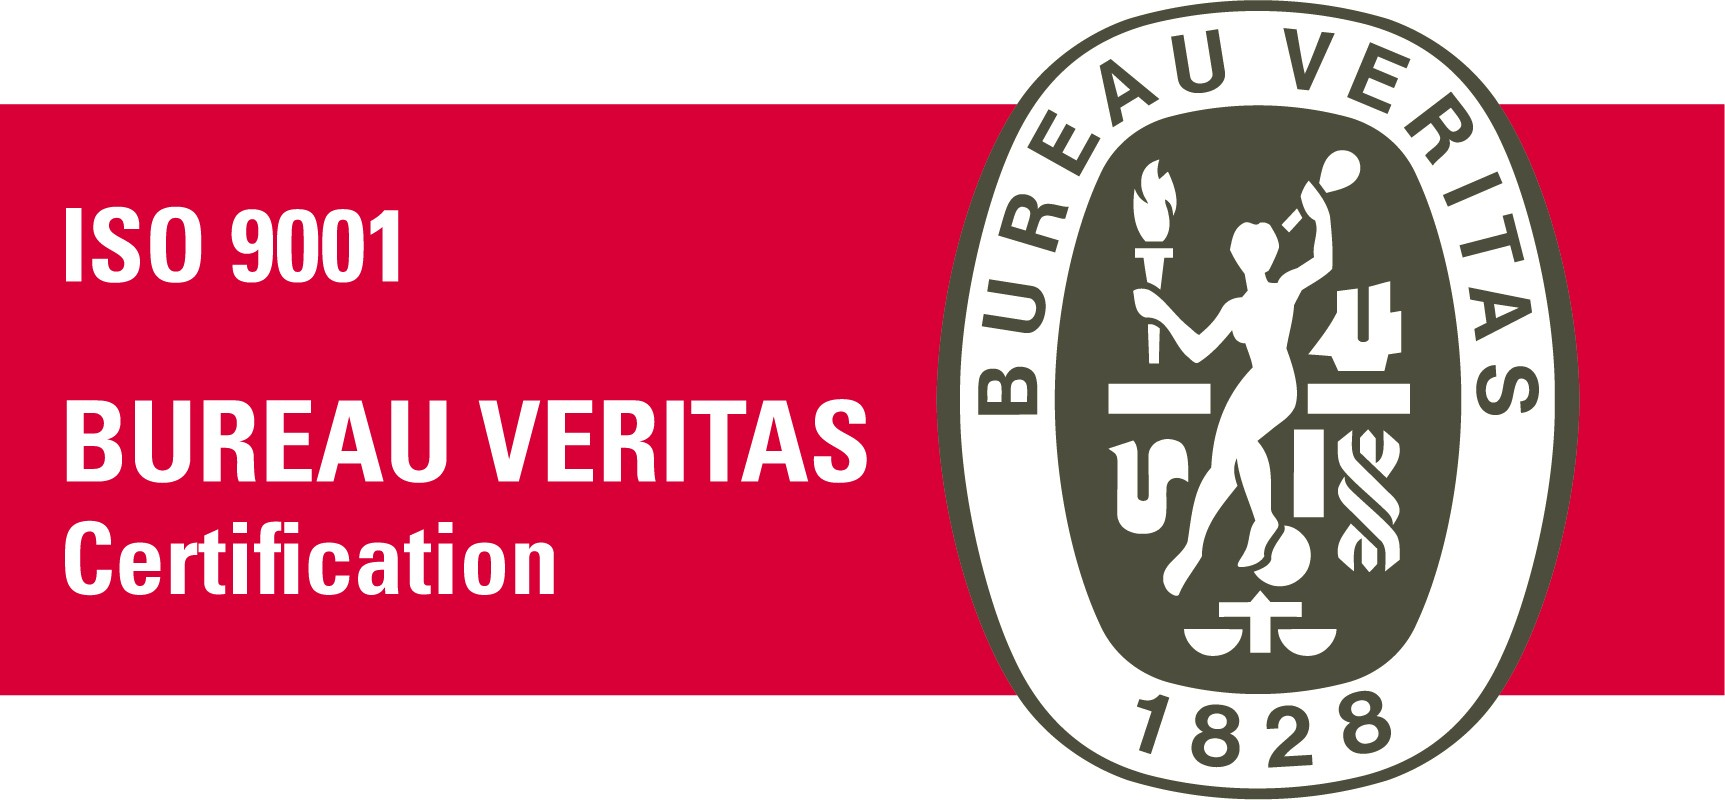 BV_Certification_ISO9001.jpg